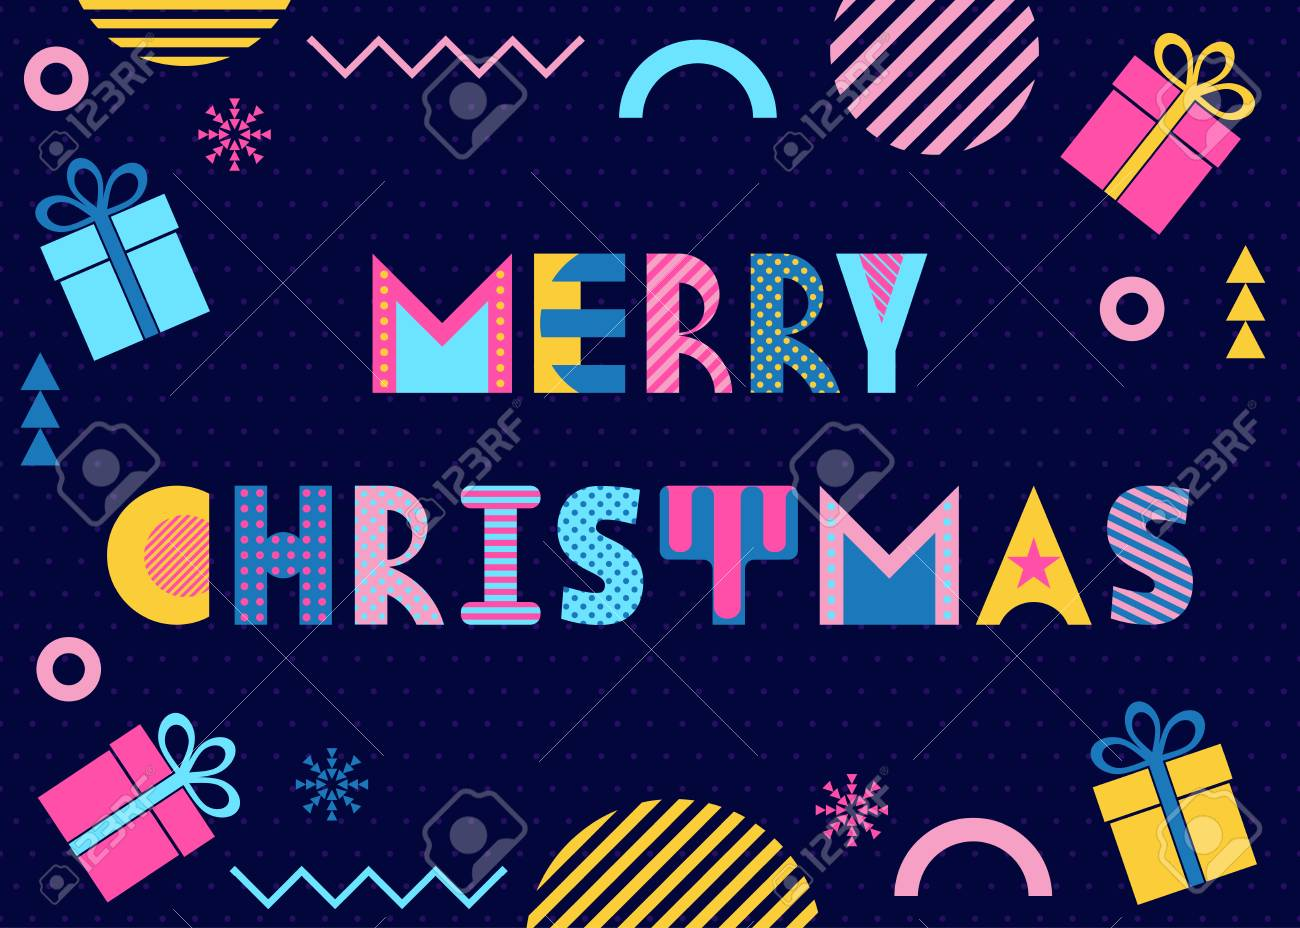 Merry Christmas  Trendy geometric font in memphis style of 80s-90s